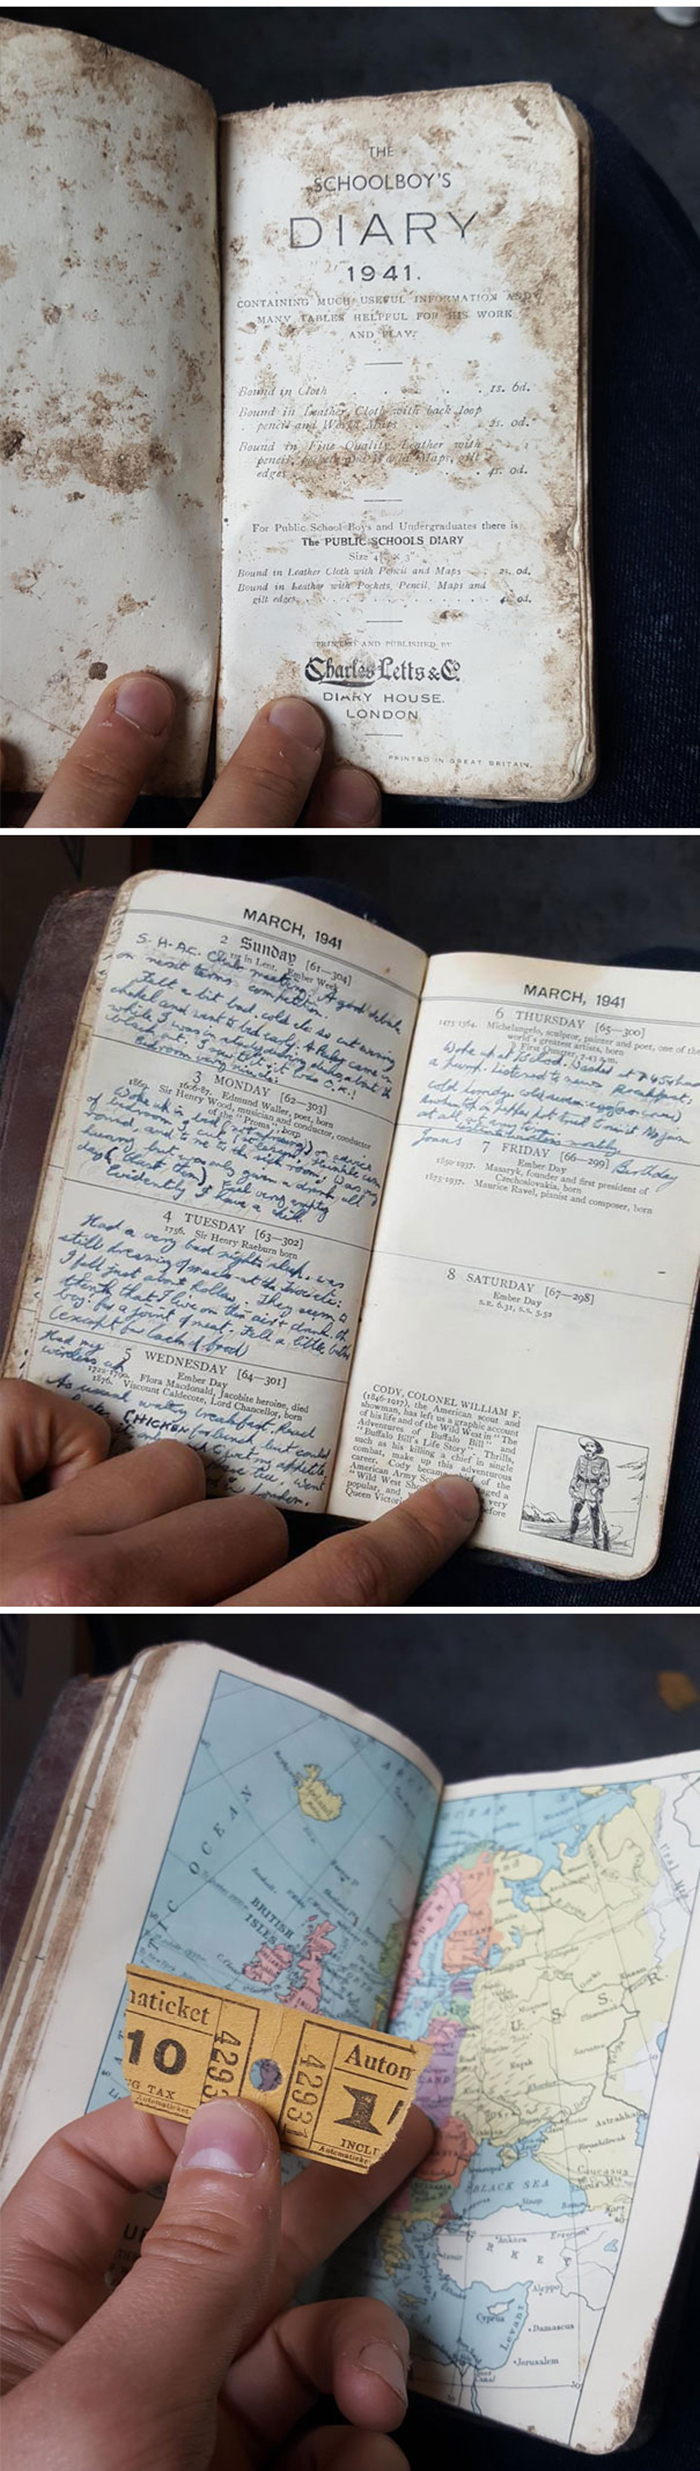 strange things discovery old diary